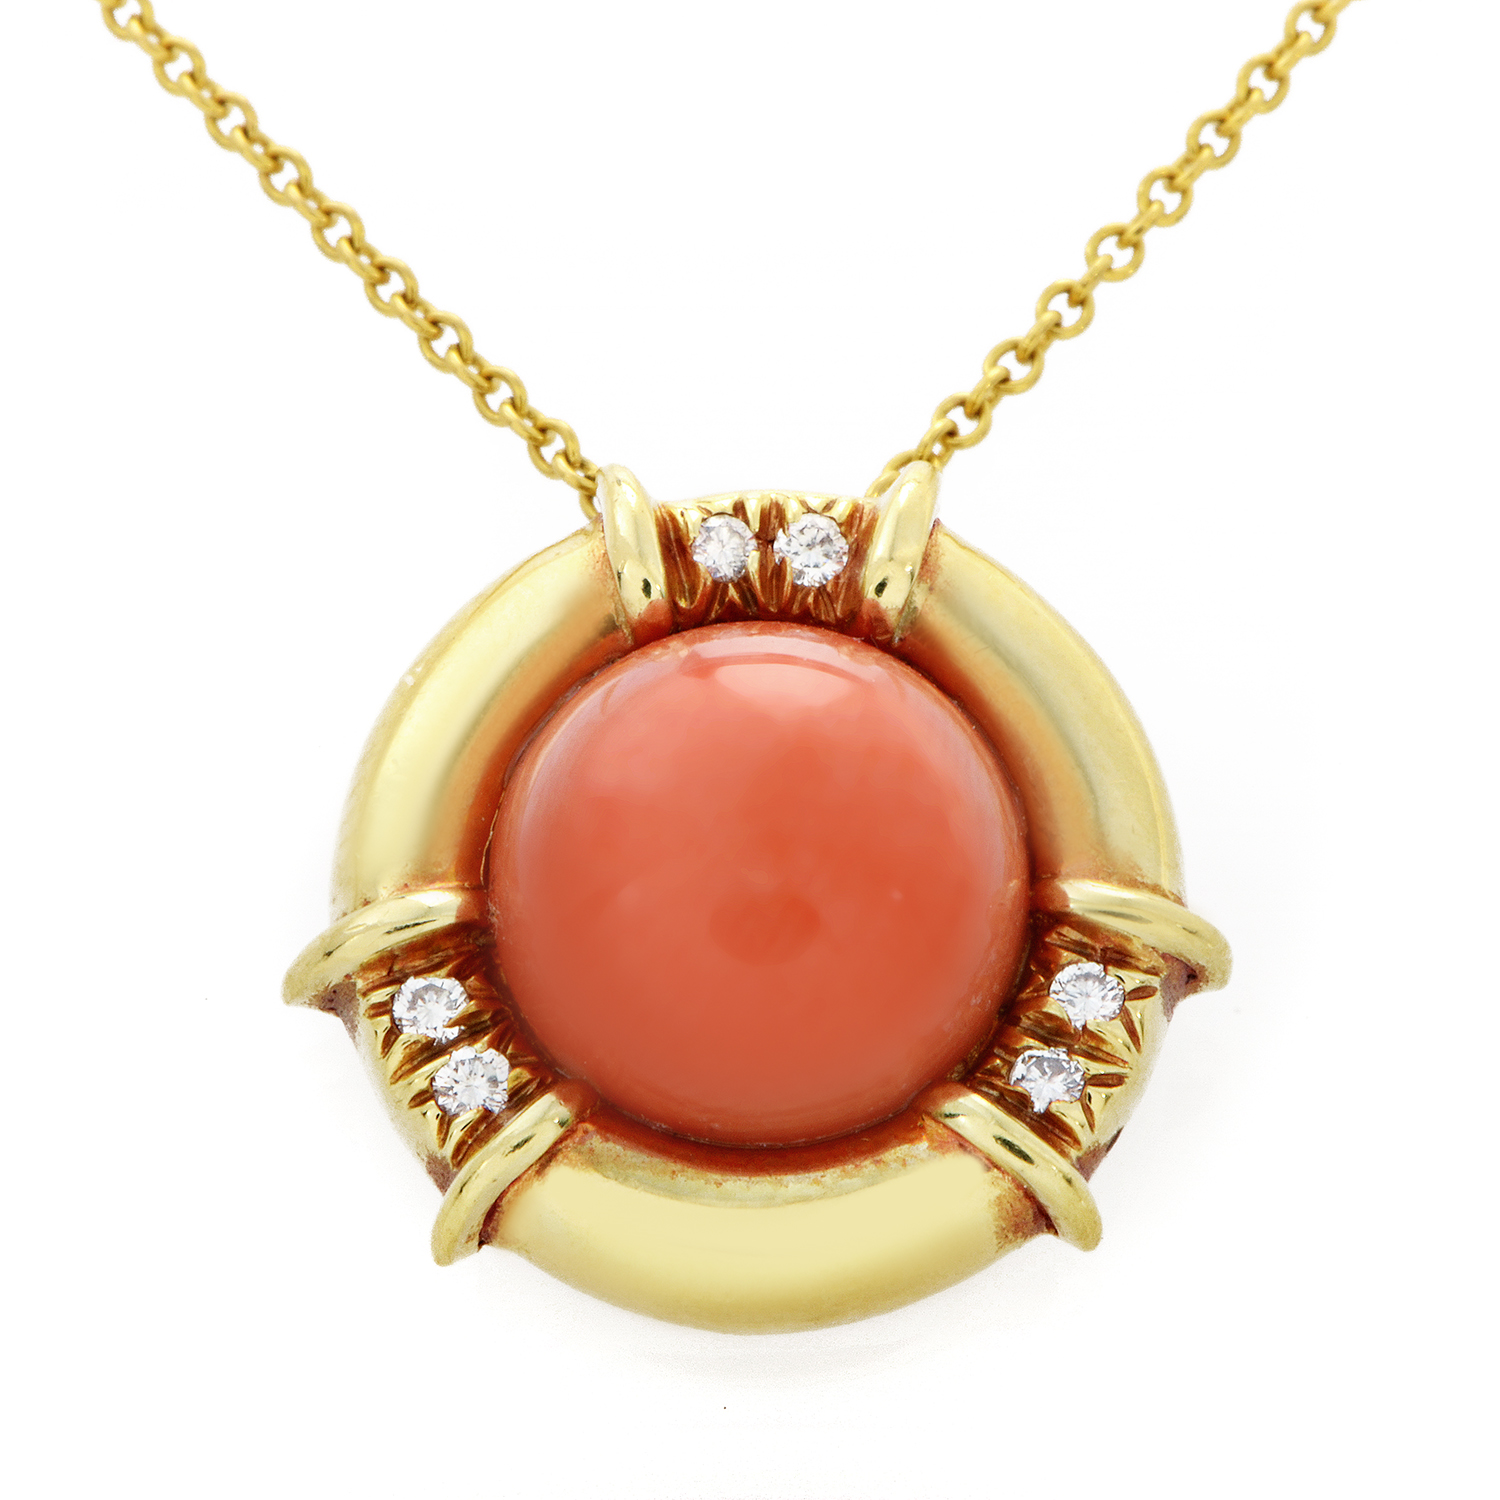 Tiffany & Co. 18K Yellow Gold Coral & Diamond Pendant Necklace